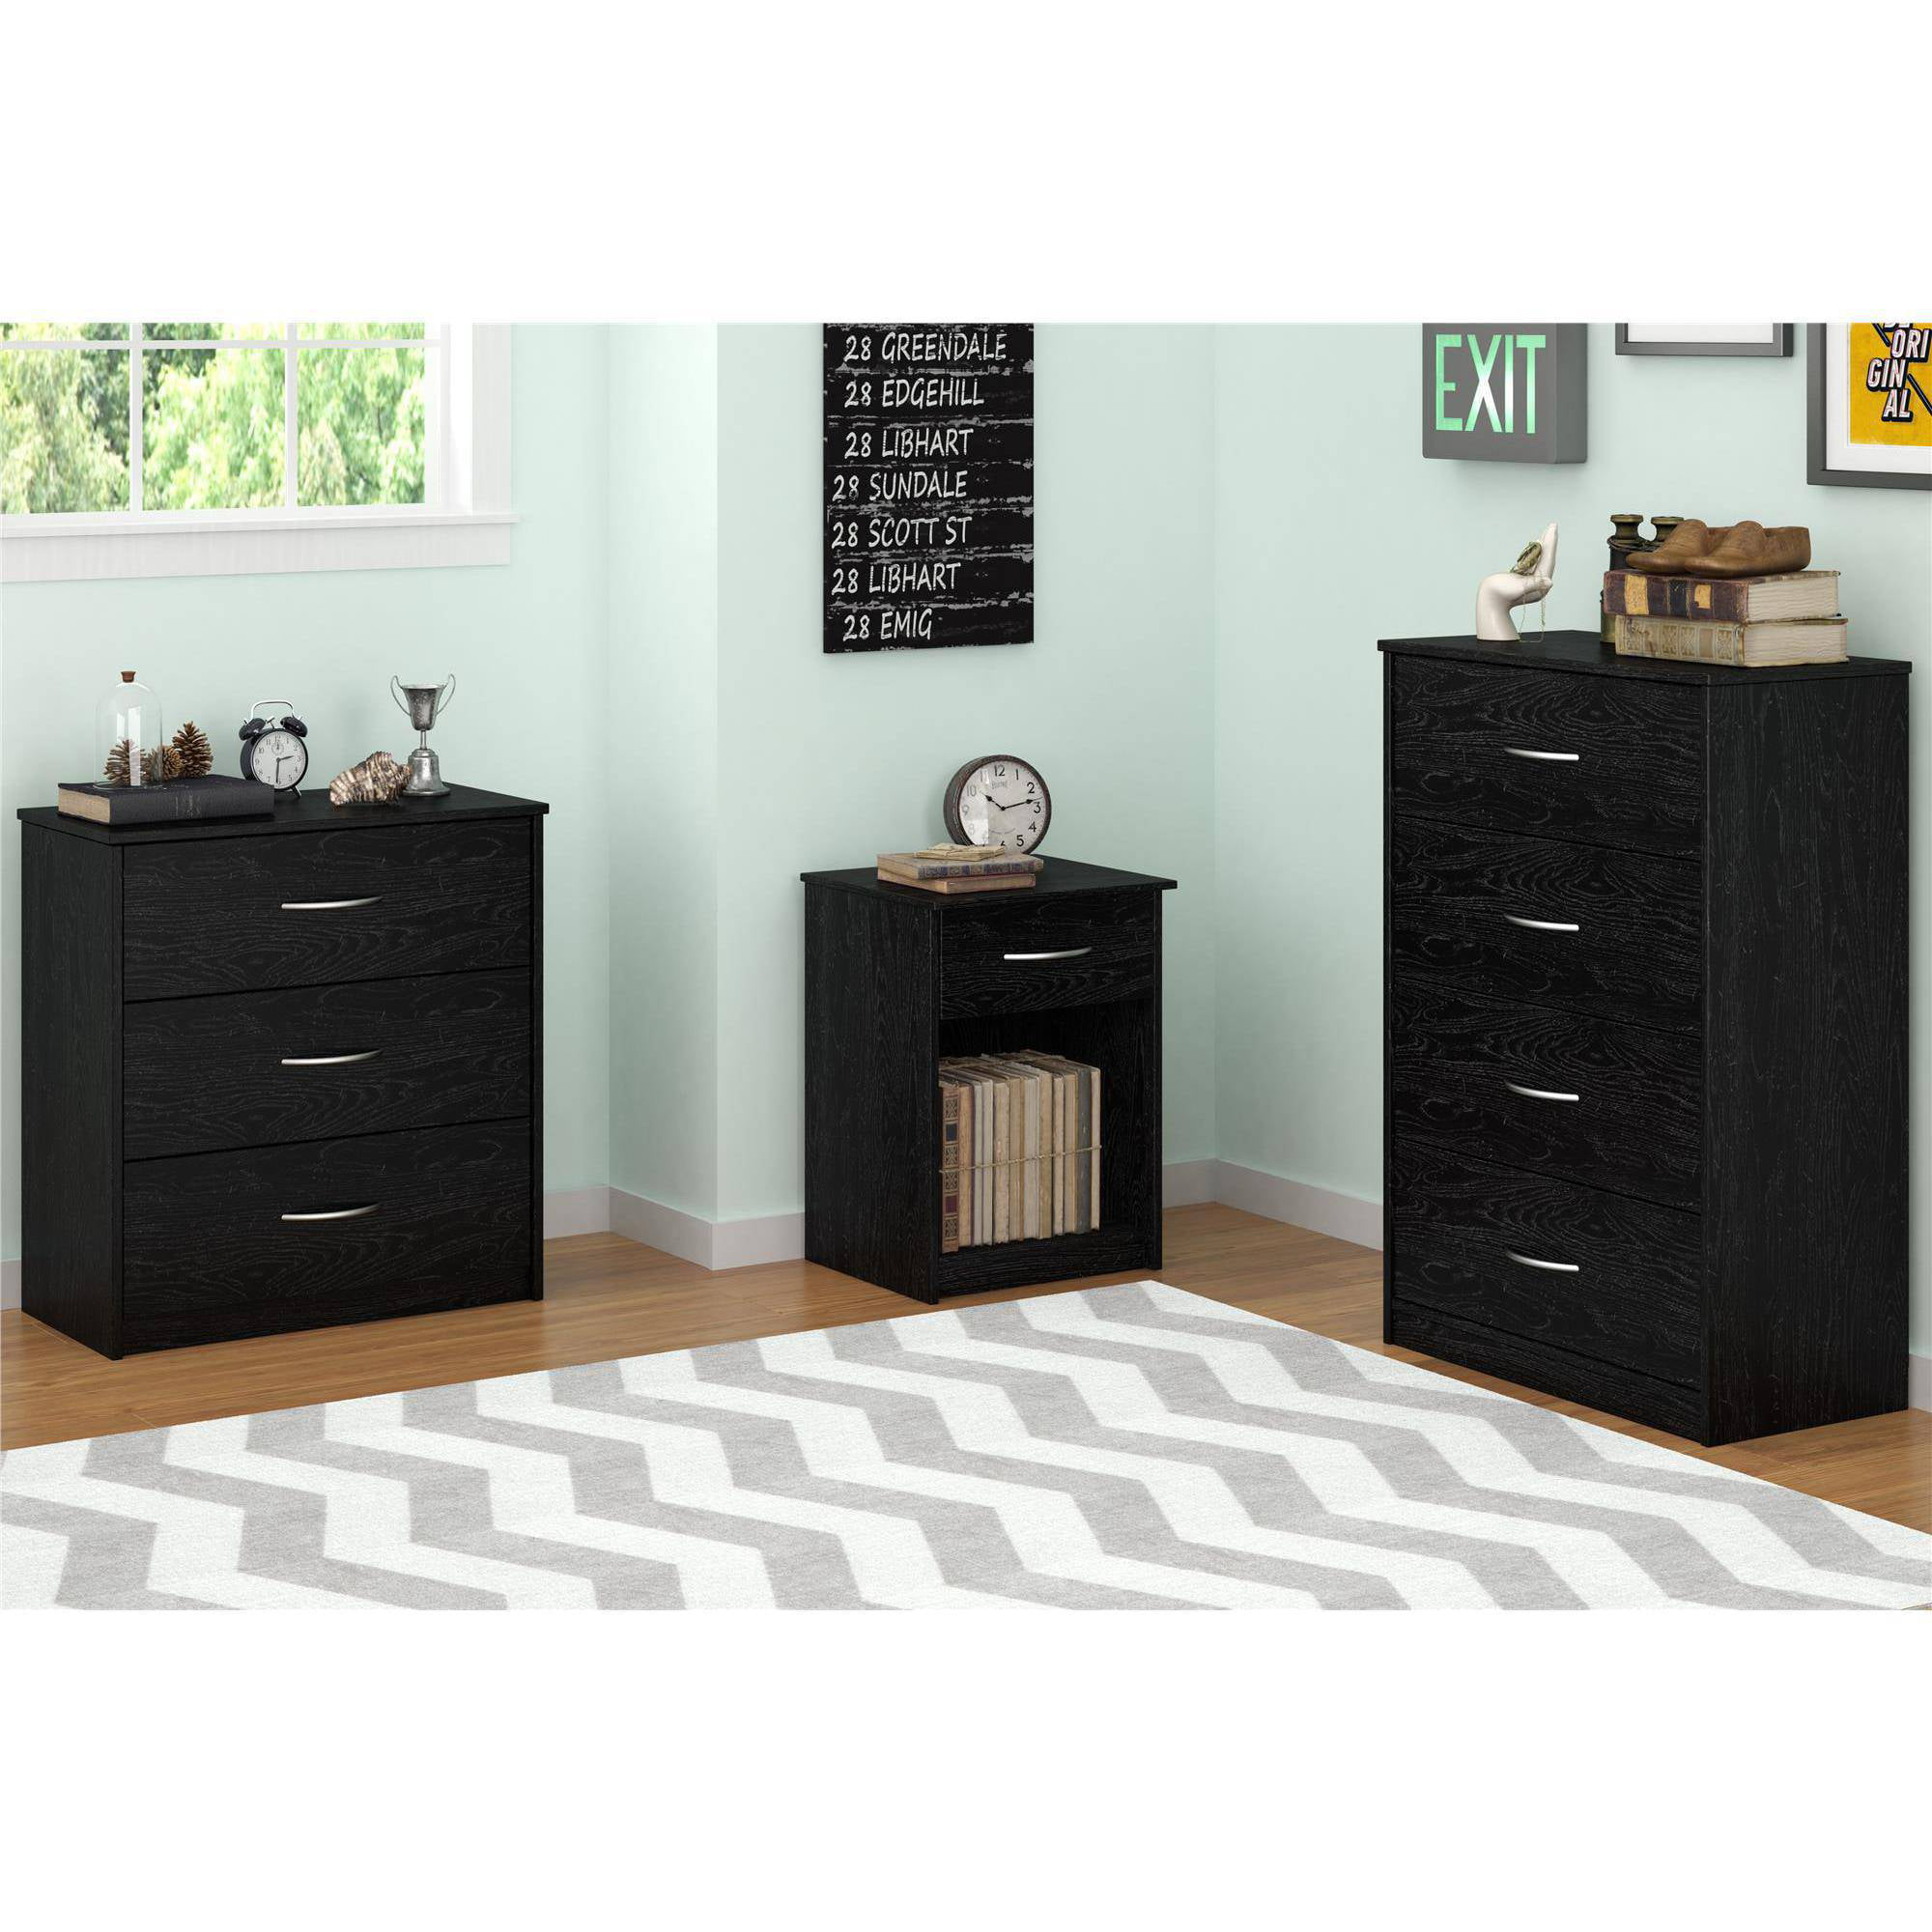 4 Drawer Dresser Chest Bedroom Furniture Black Brown White Storage Wood Modern Ebay